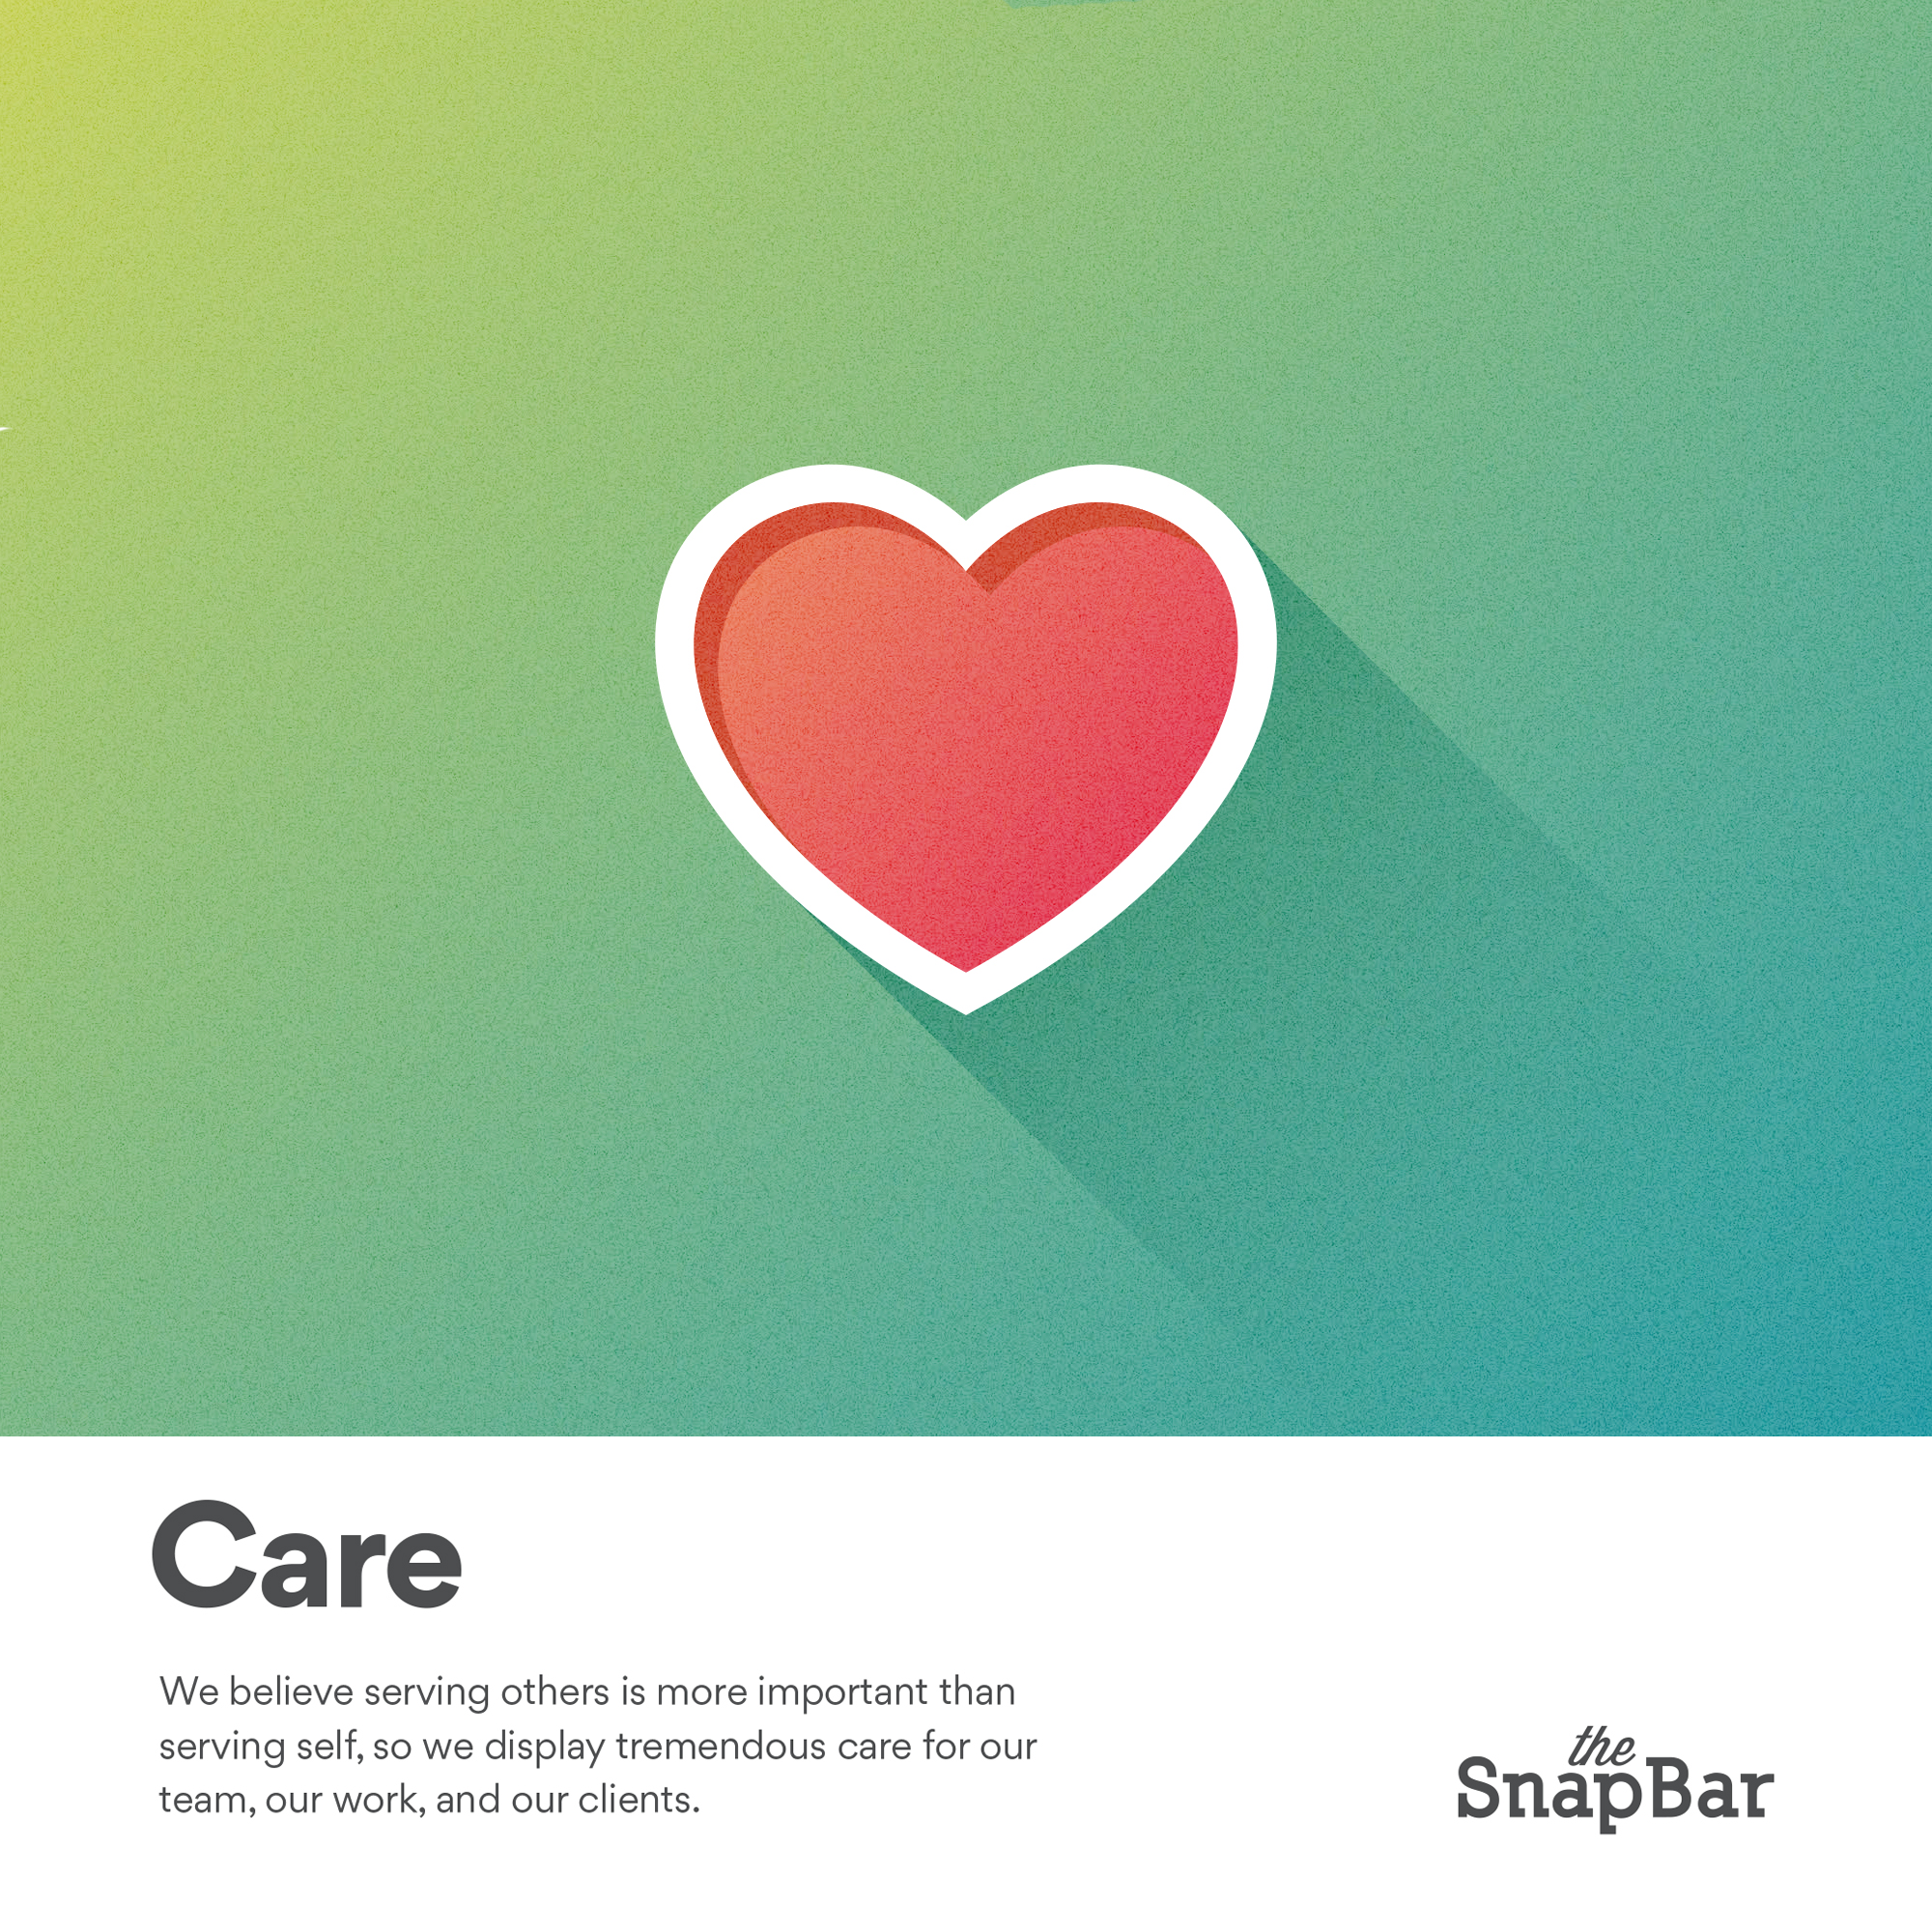 The SnapBar Core Values Care